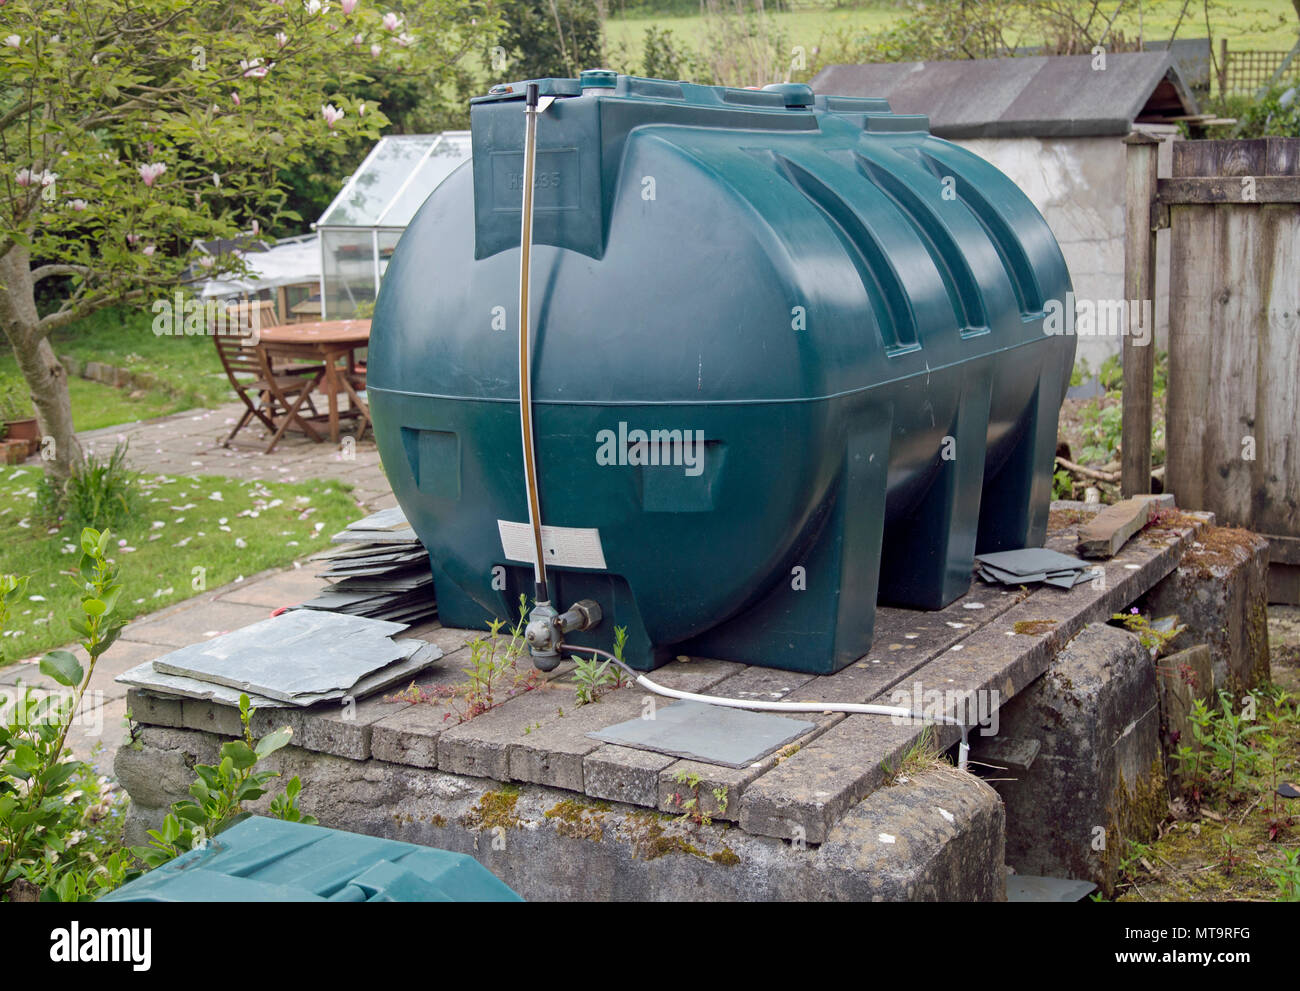 Heating Oil House Stock Photos & Heating Oil House Stock Images - Alamy